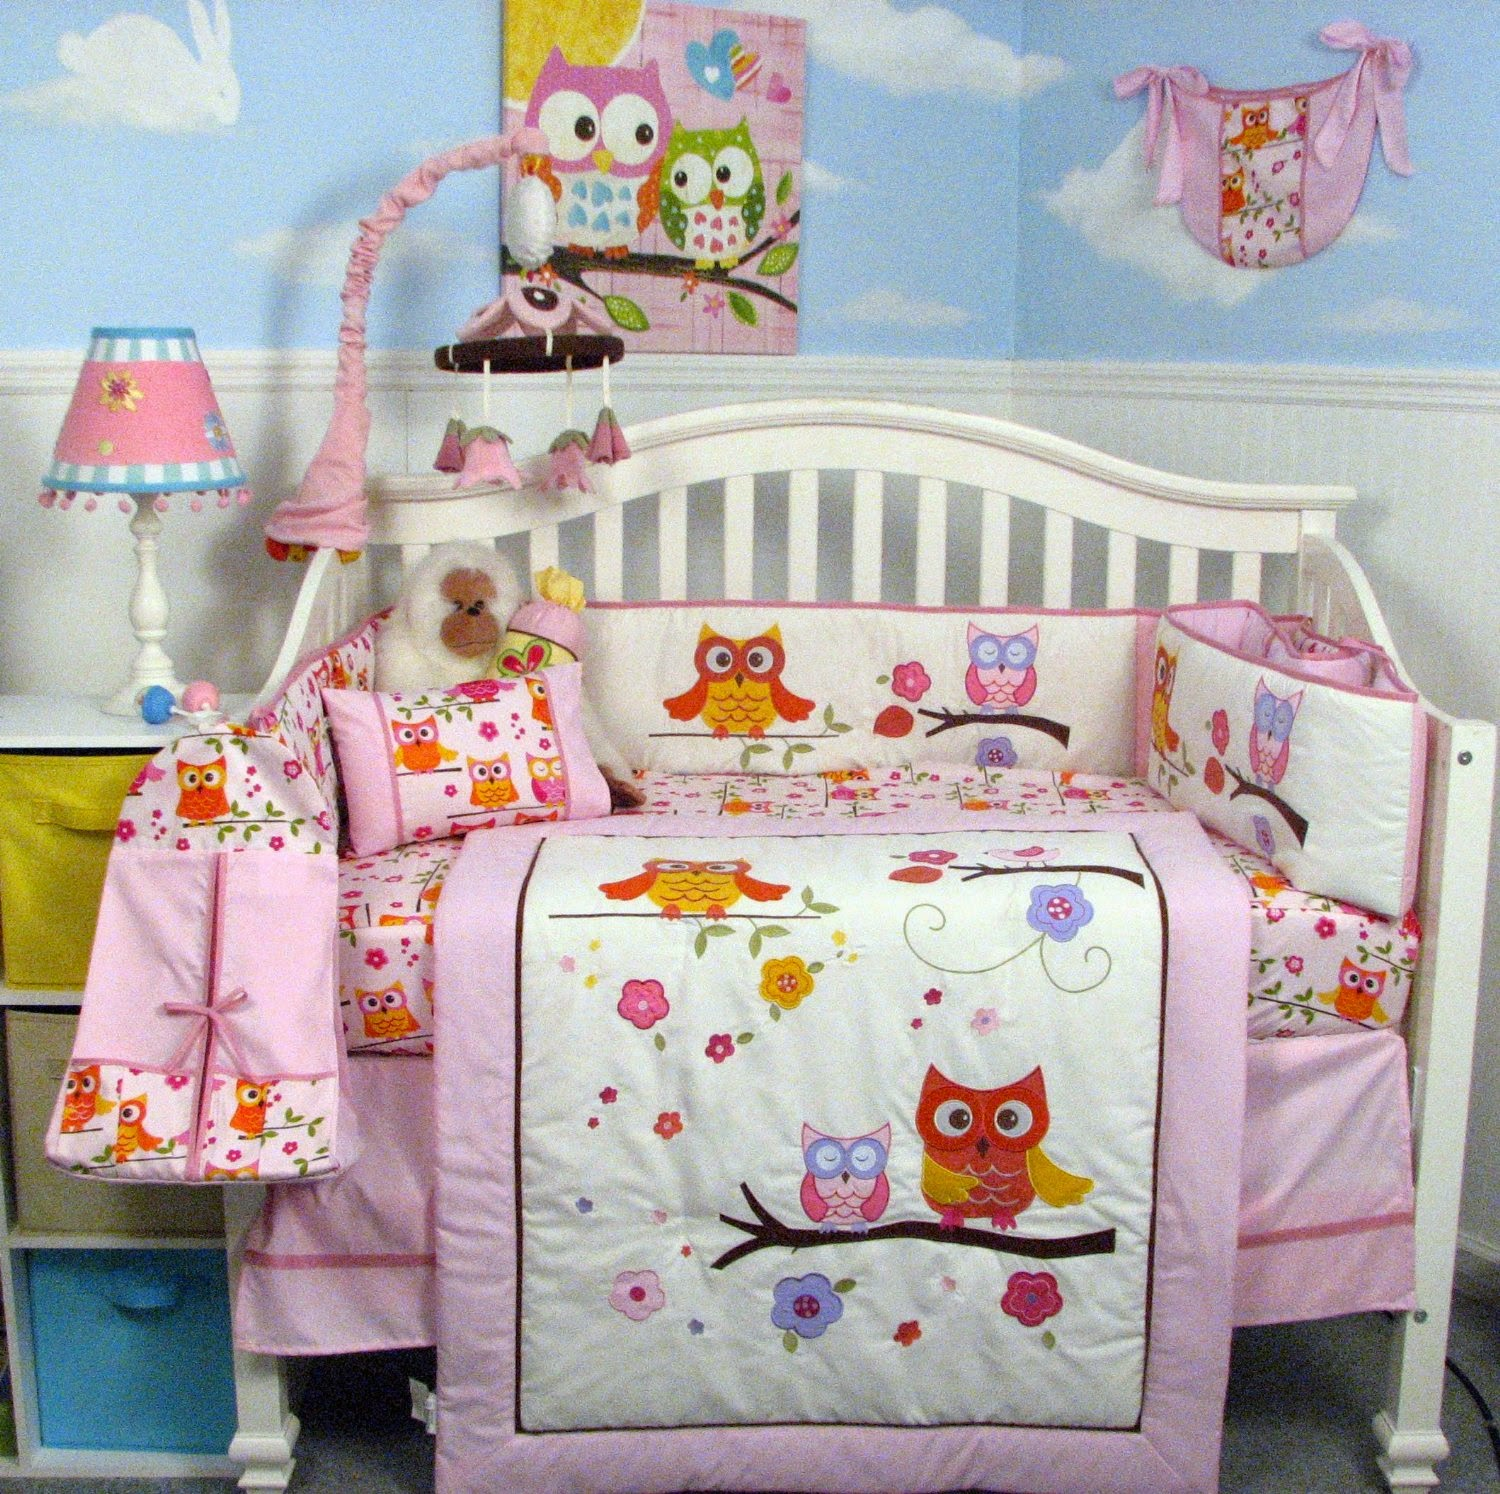 Soho pink dancing owl baby crib nursery bedding set with diaper bag 14